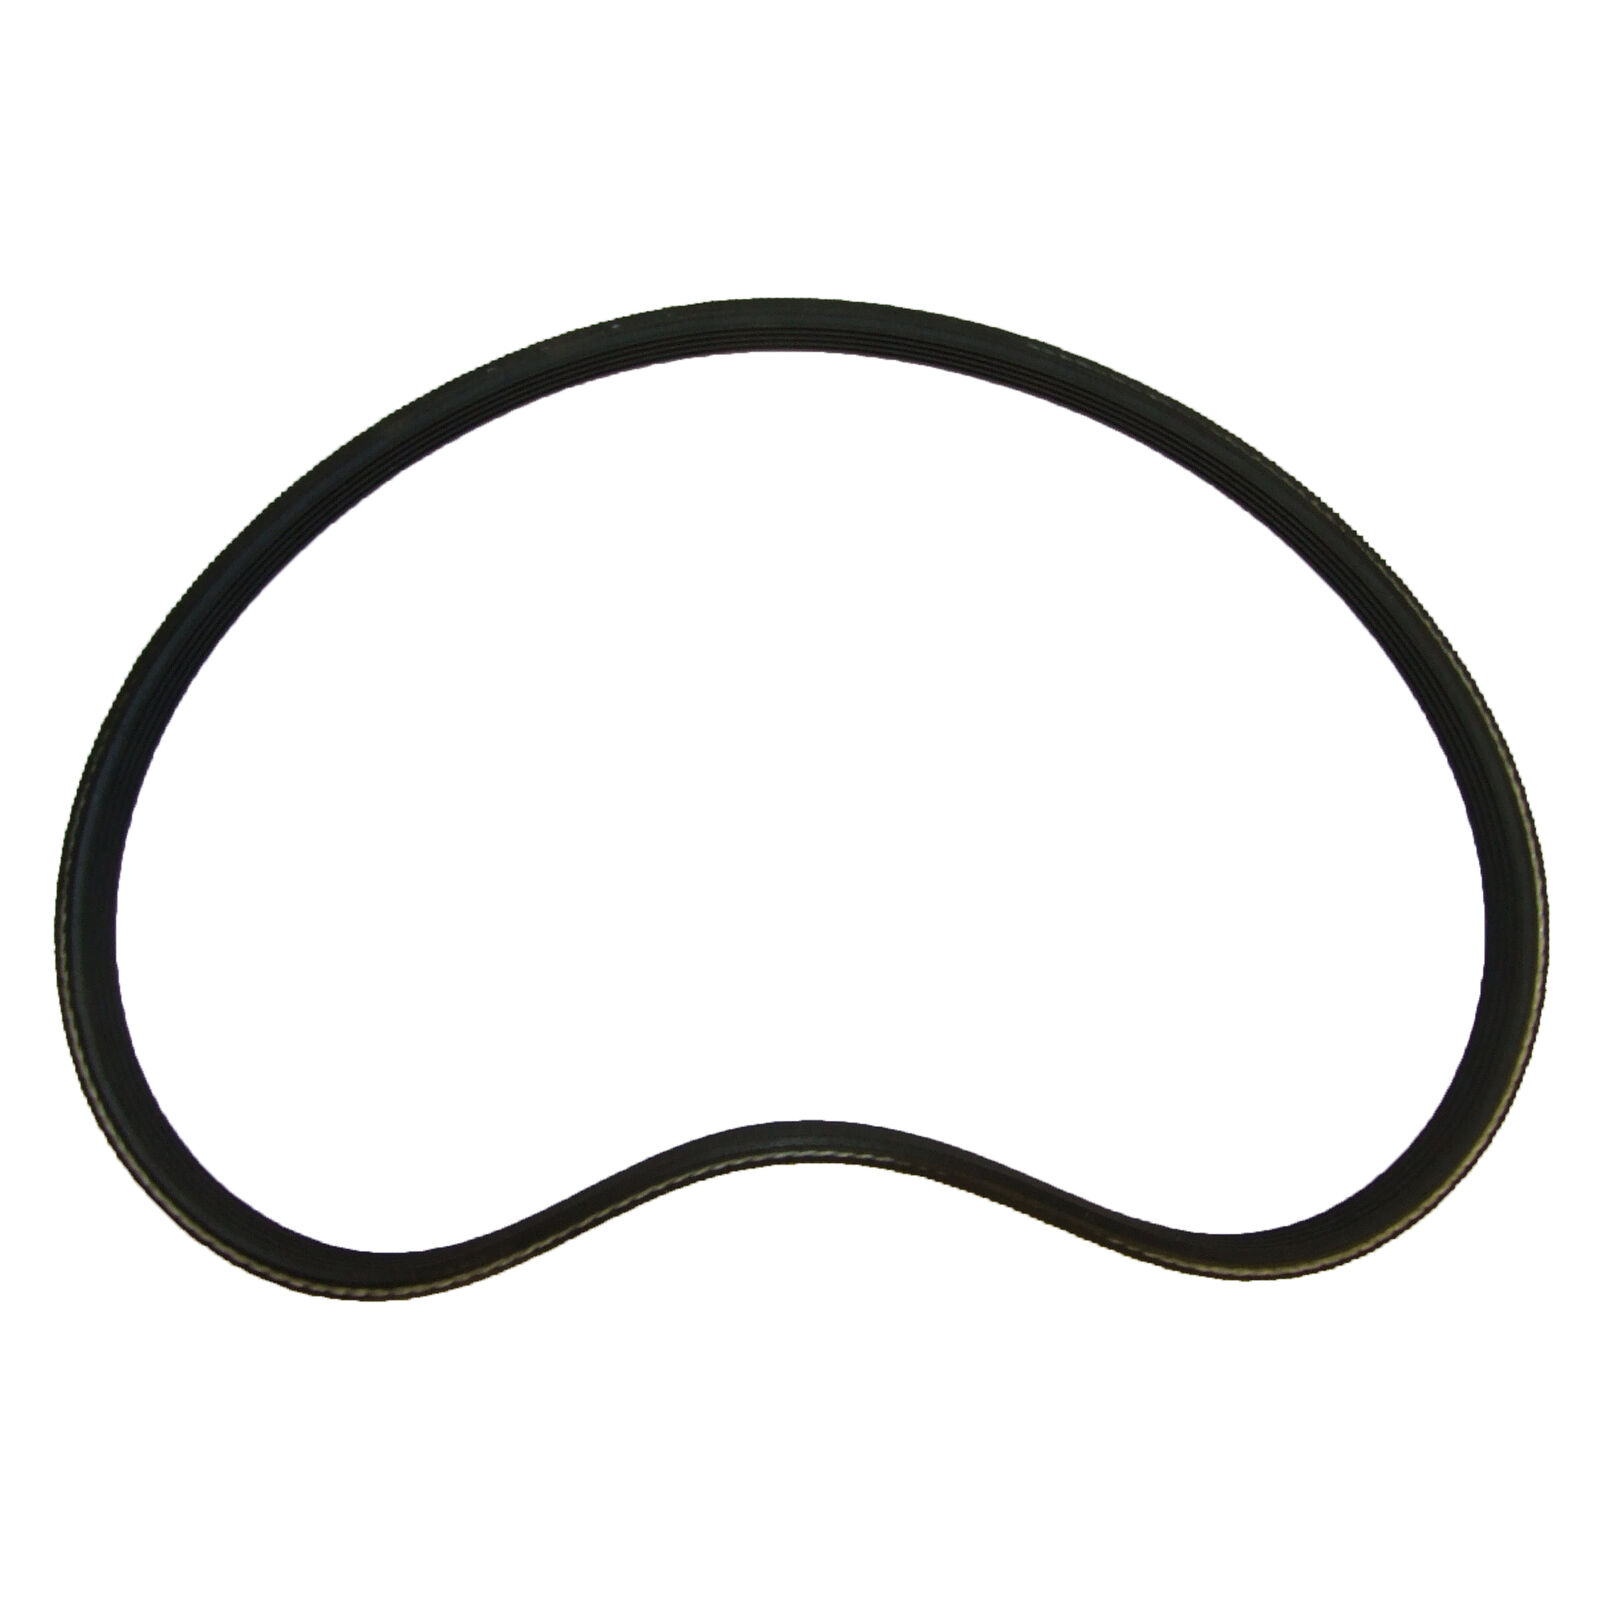 Flymo PC330 PC400 Power Compact 330 400 Poly V Drive Belt Fits Lawnmower 2